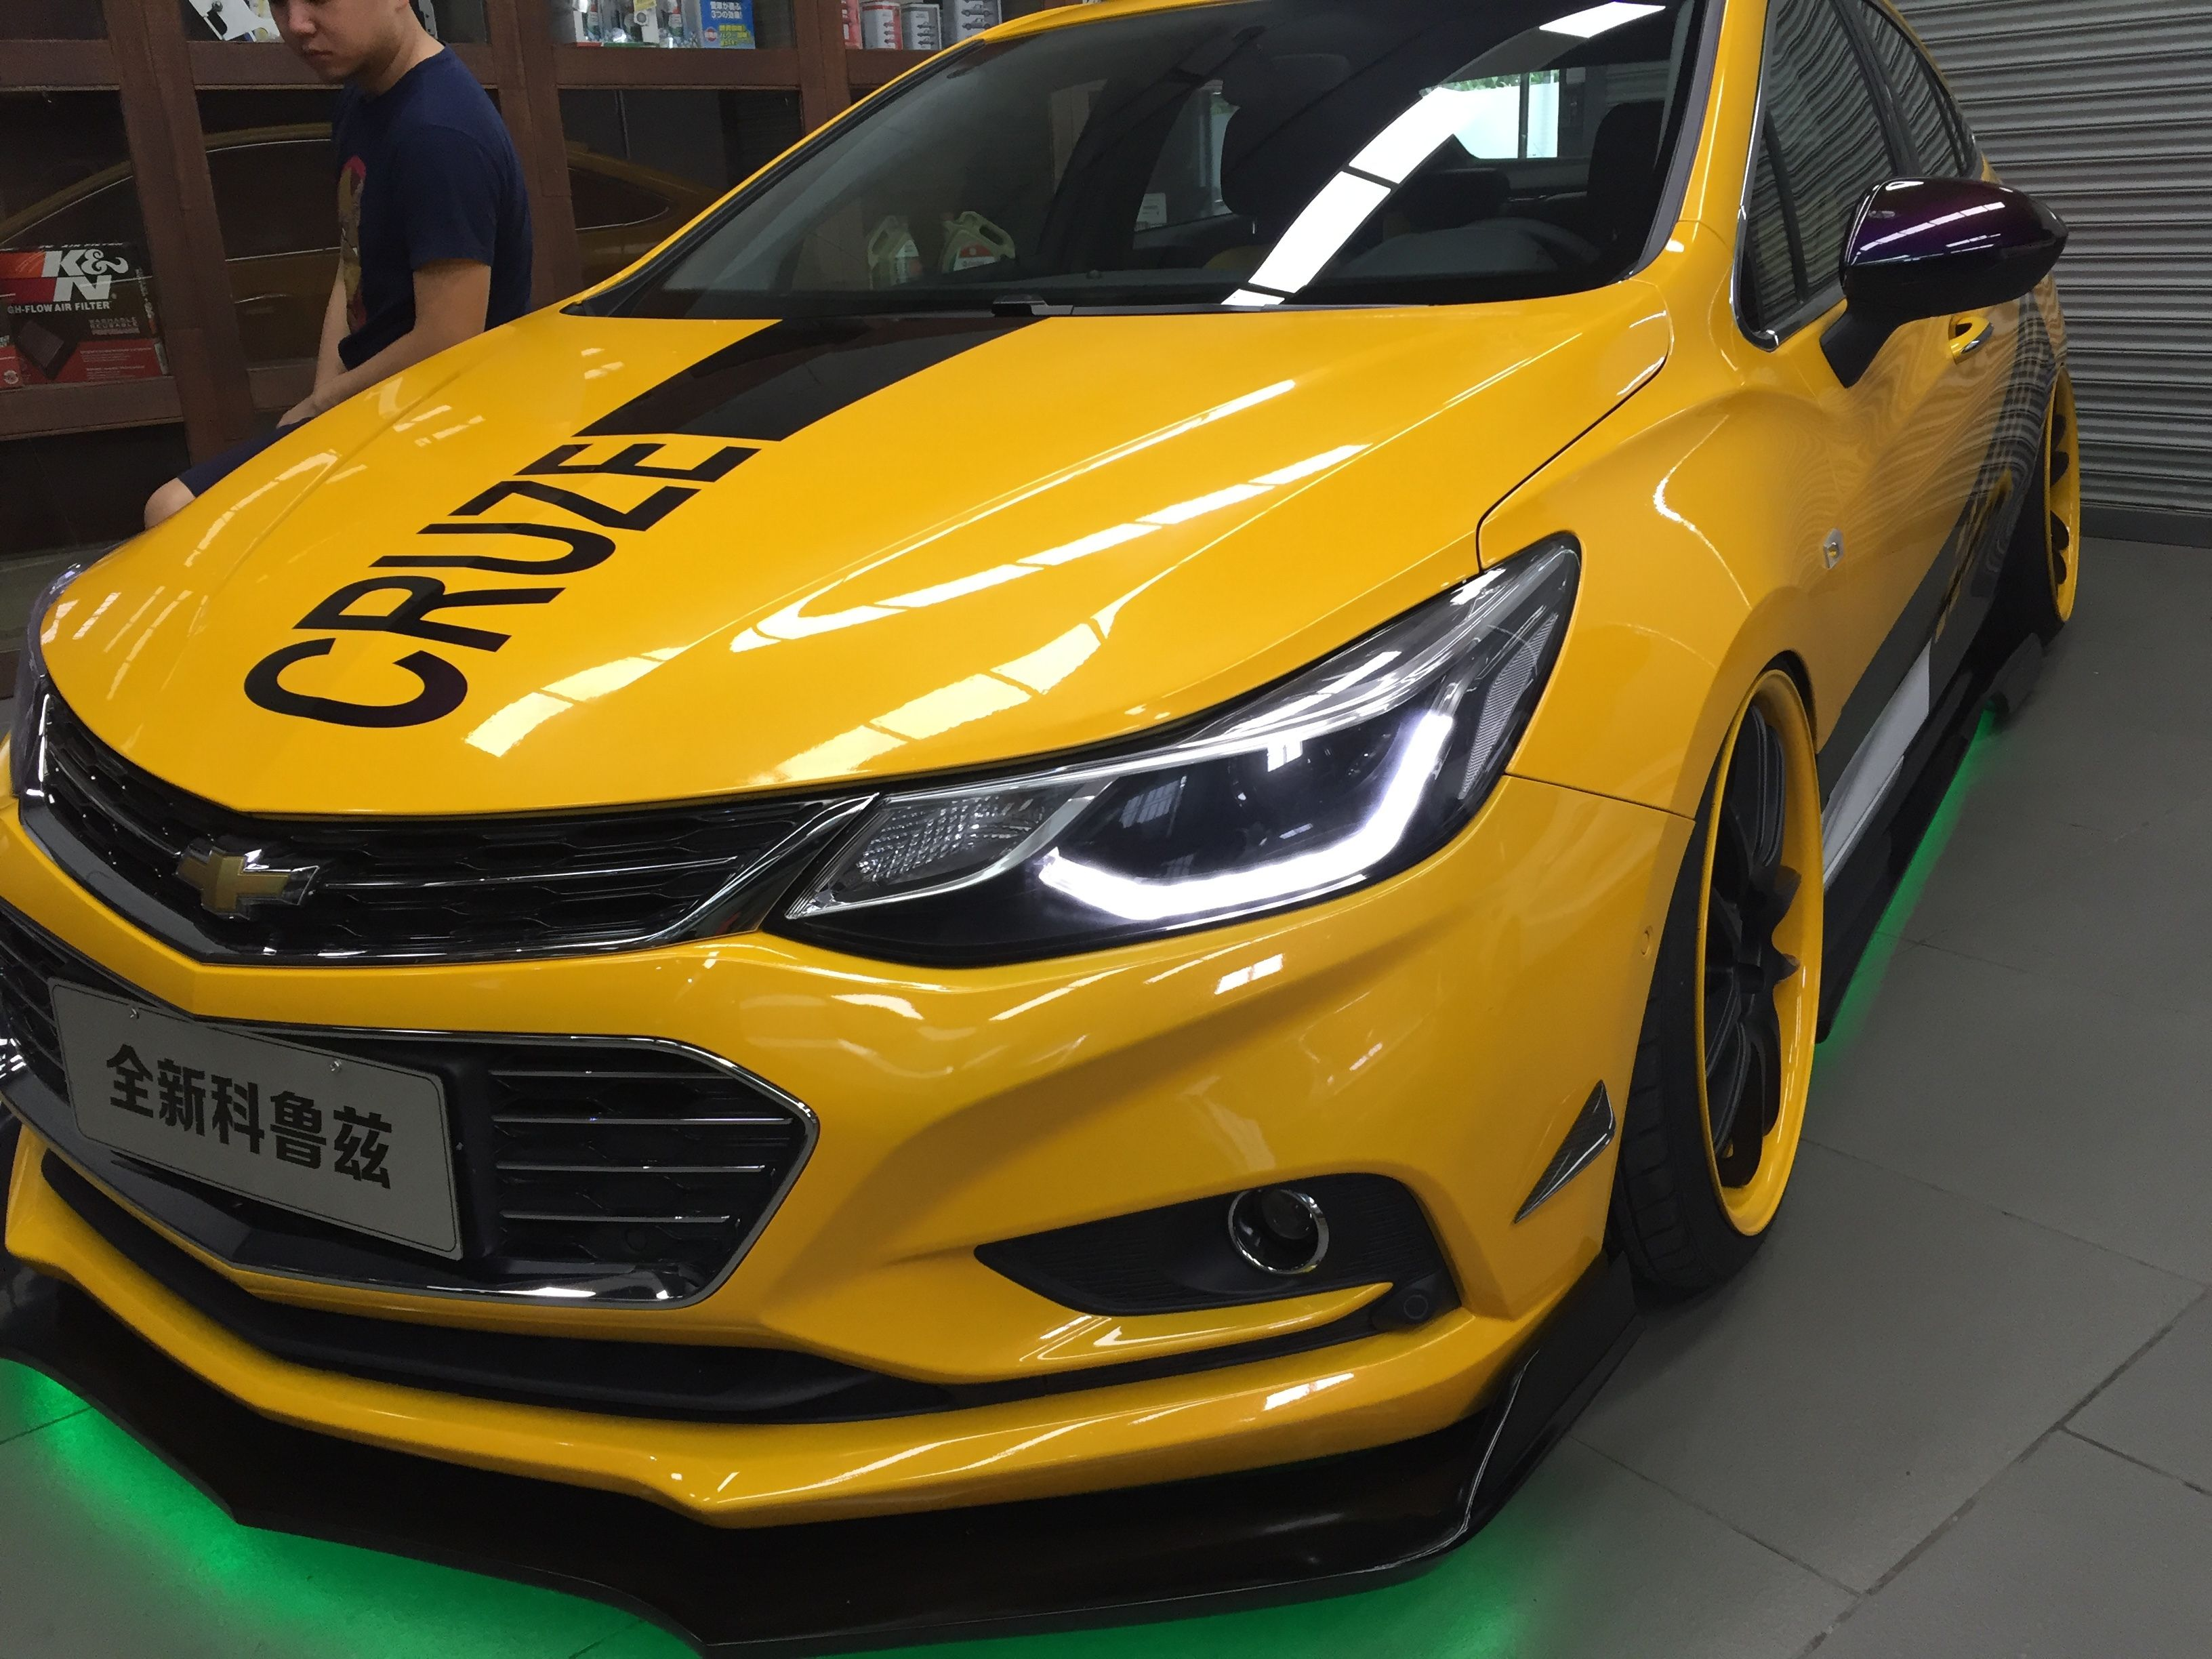 Here Is Chevorlet New Cruze Customize 5x105 To X114 3 Wheel Spacer Nice Color Chevy Cruze Cruze Chevrolet Cruze